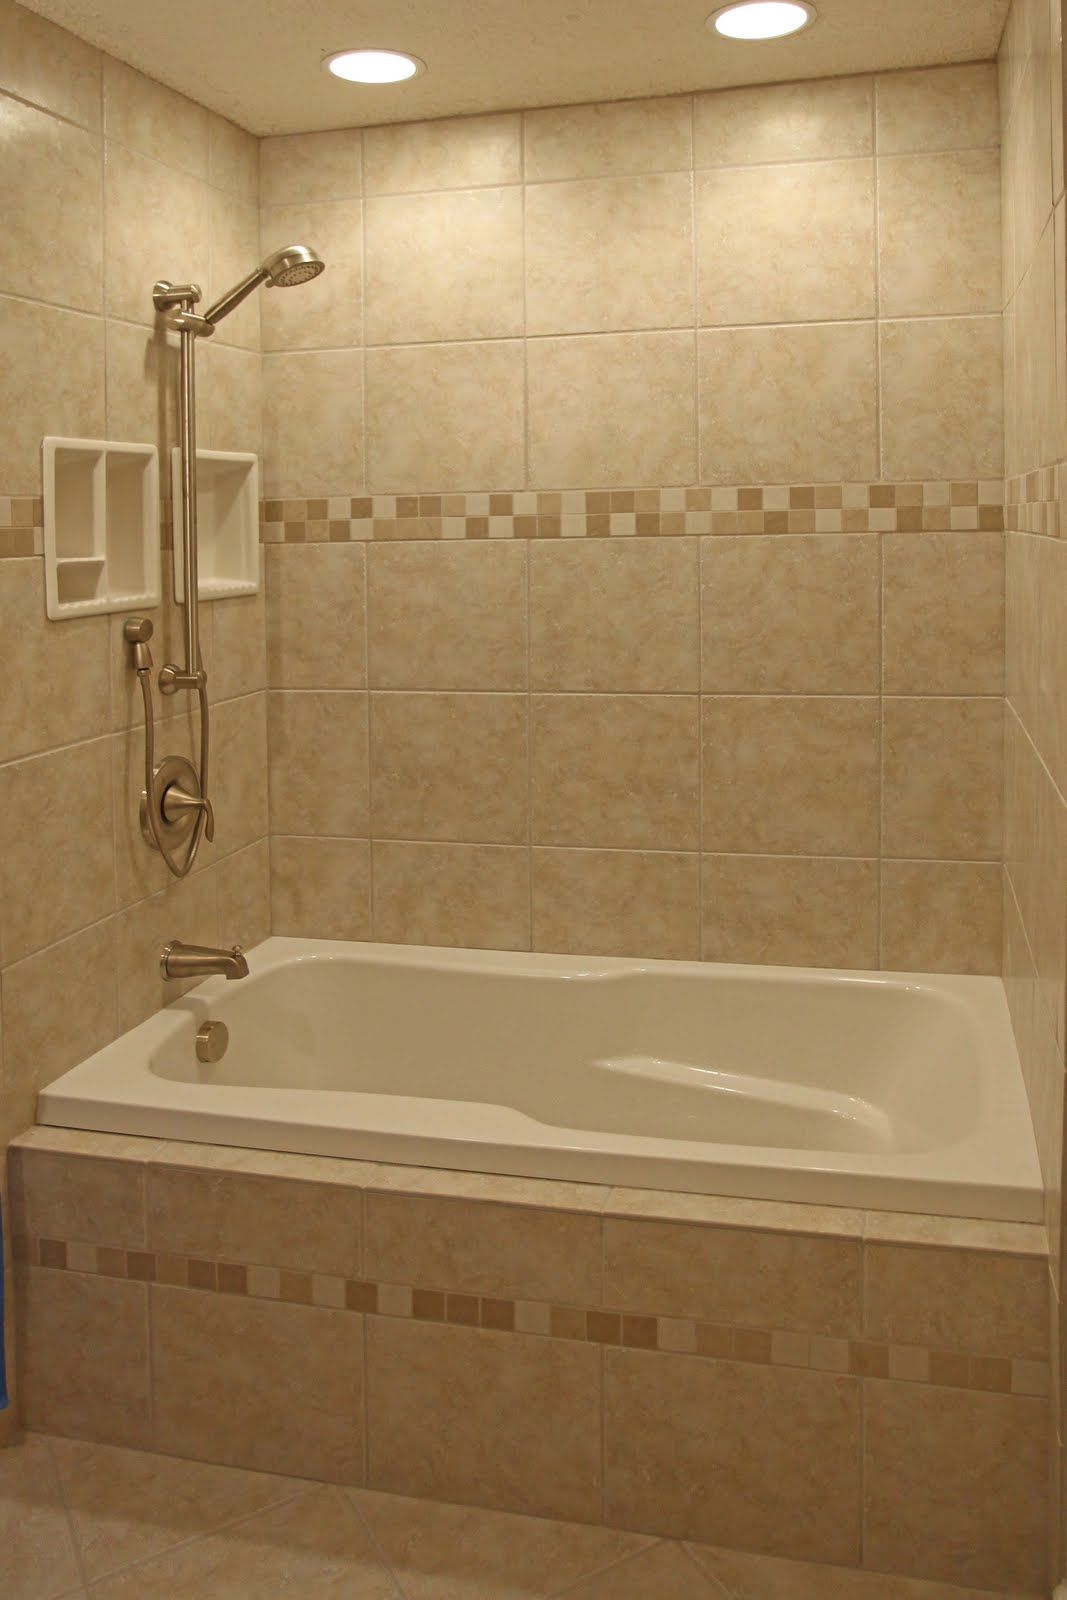 How To Install Bathroom Floor Tile Bathtub Tile Bathroom Tile